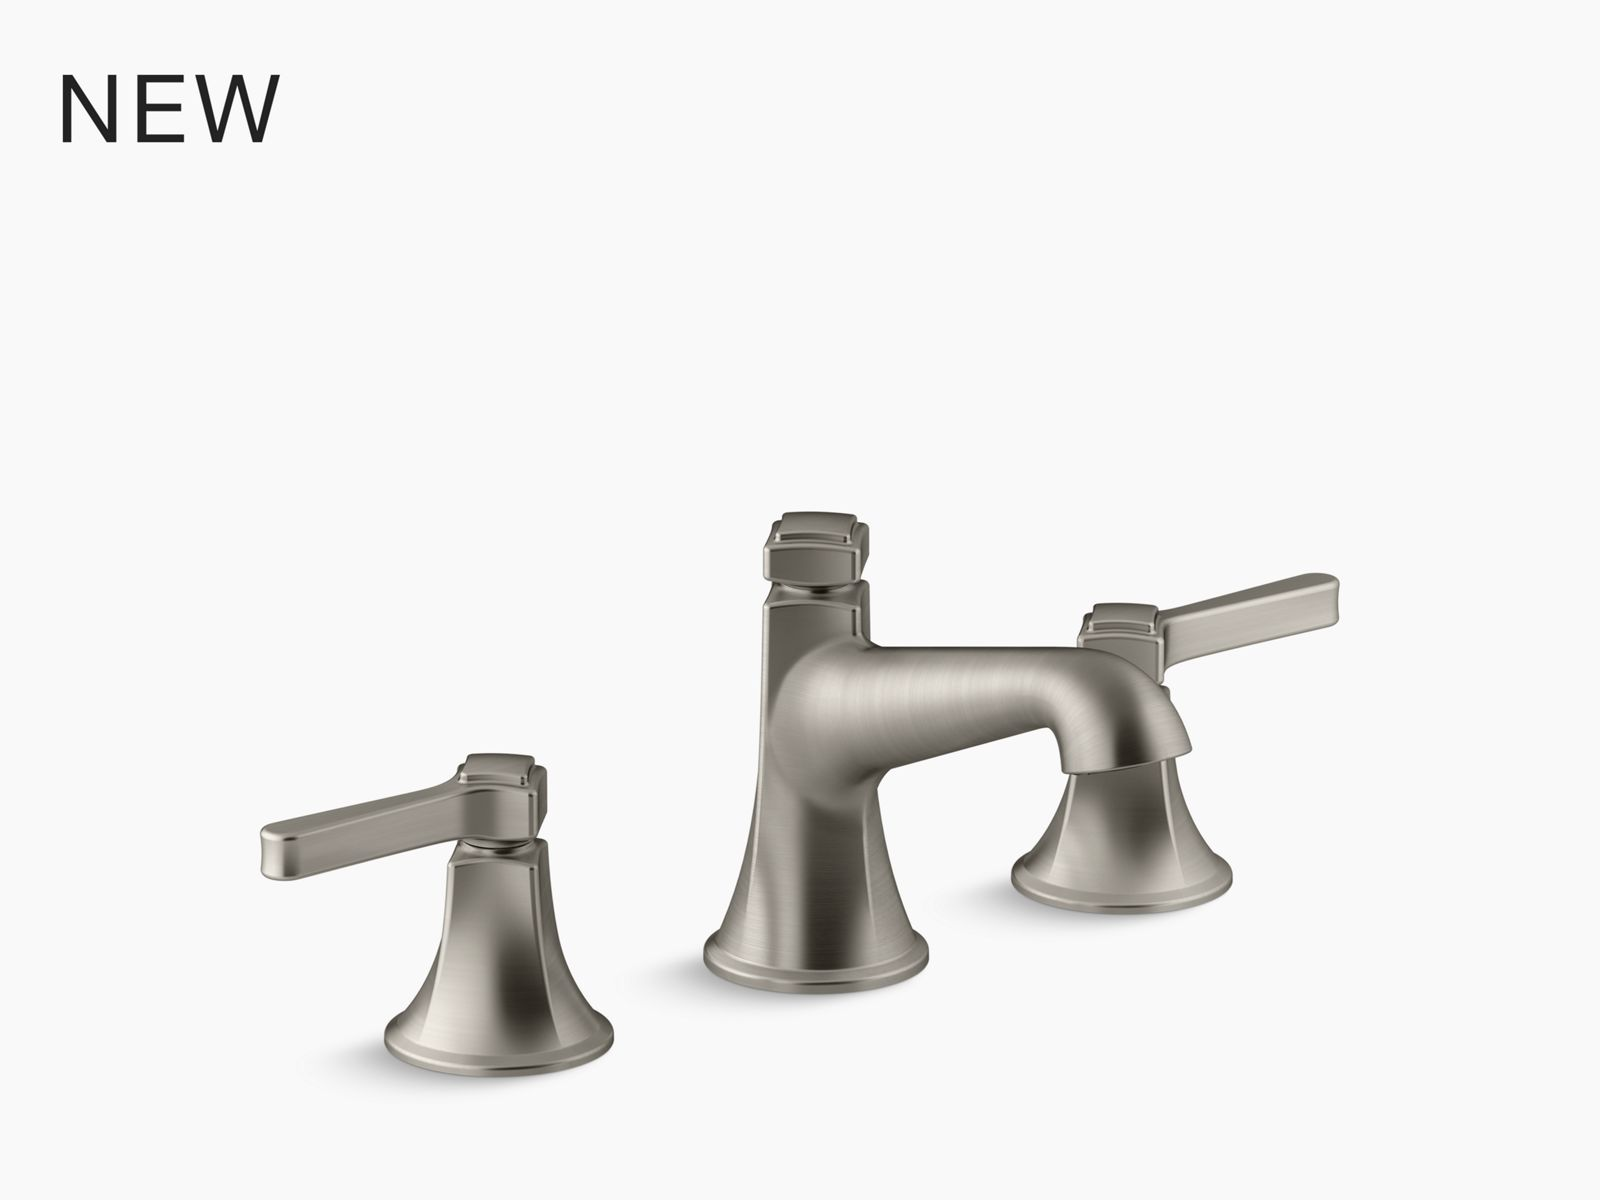 carafe filtered water kitchen sink faucet